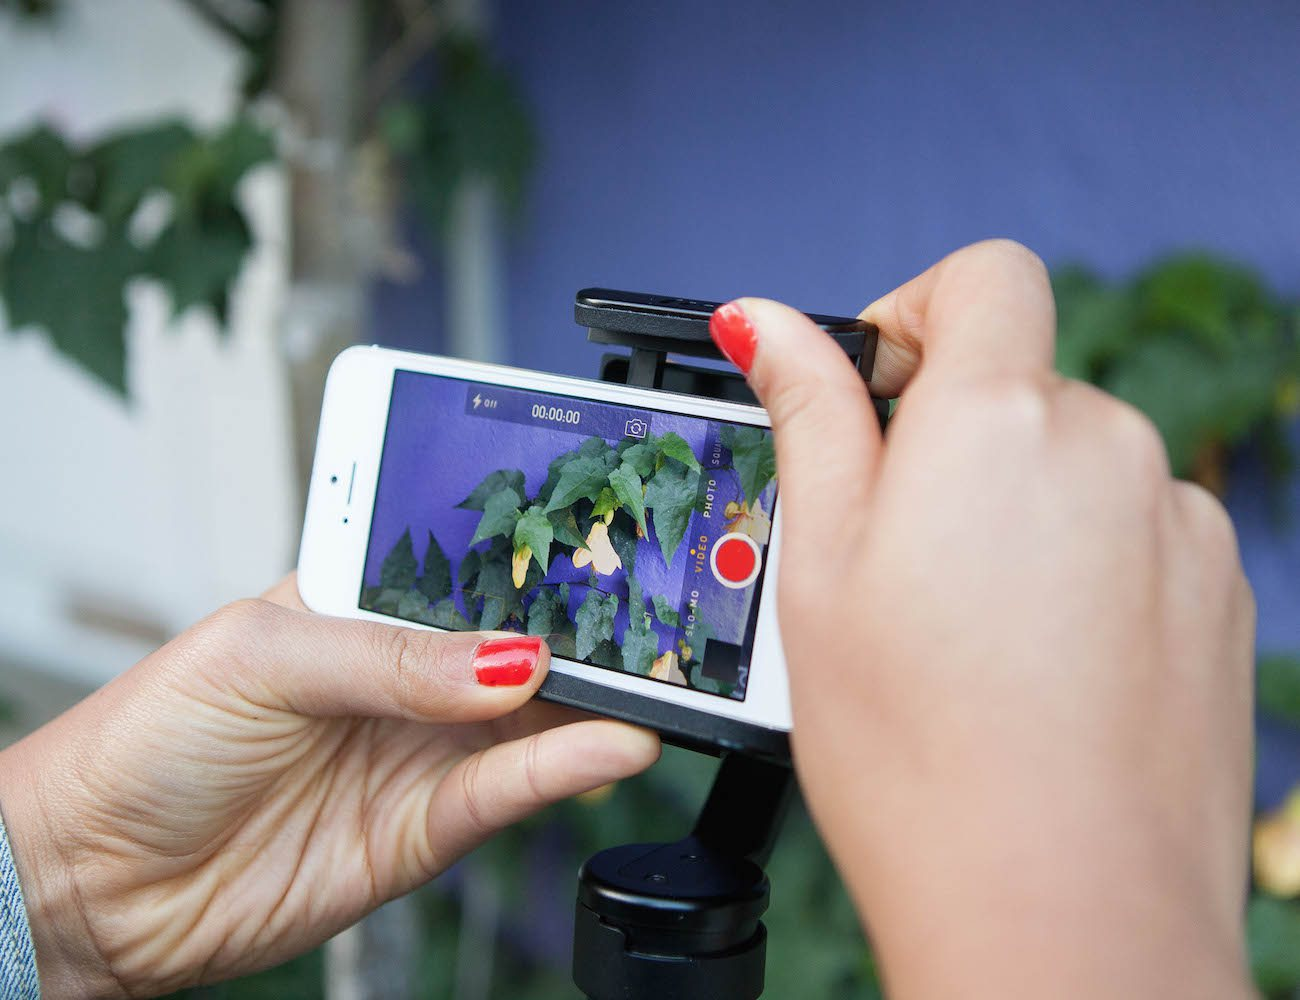 Fly-X3 – The Handy Motorized Phone Stabilizer